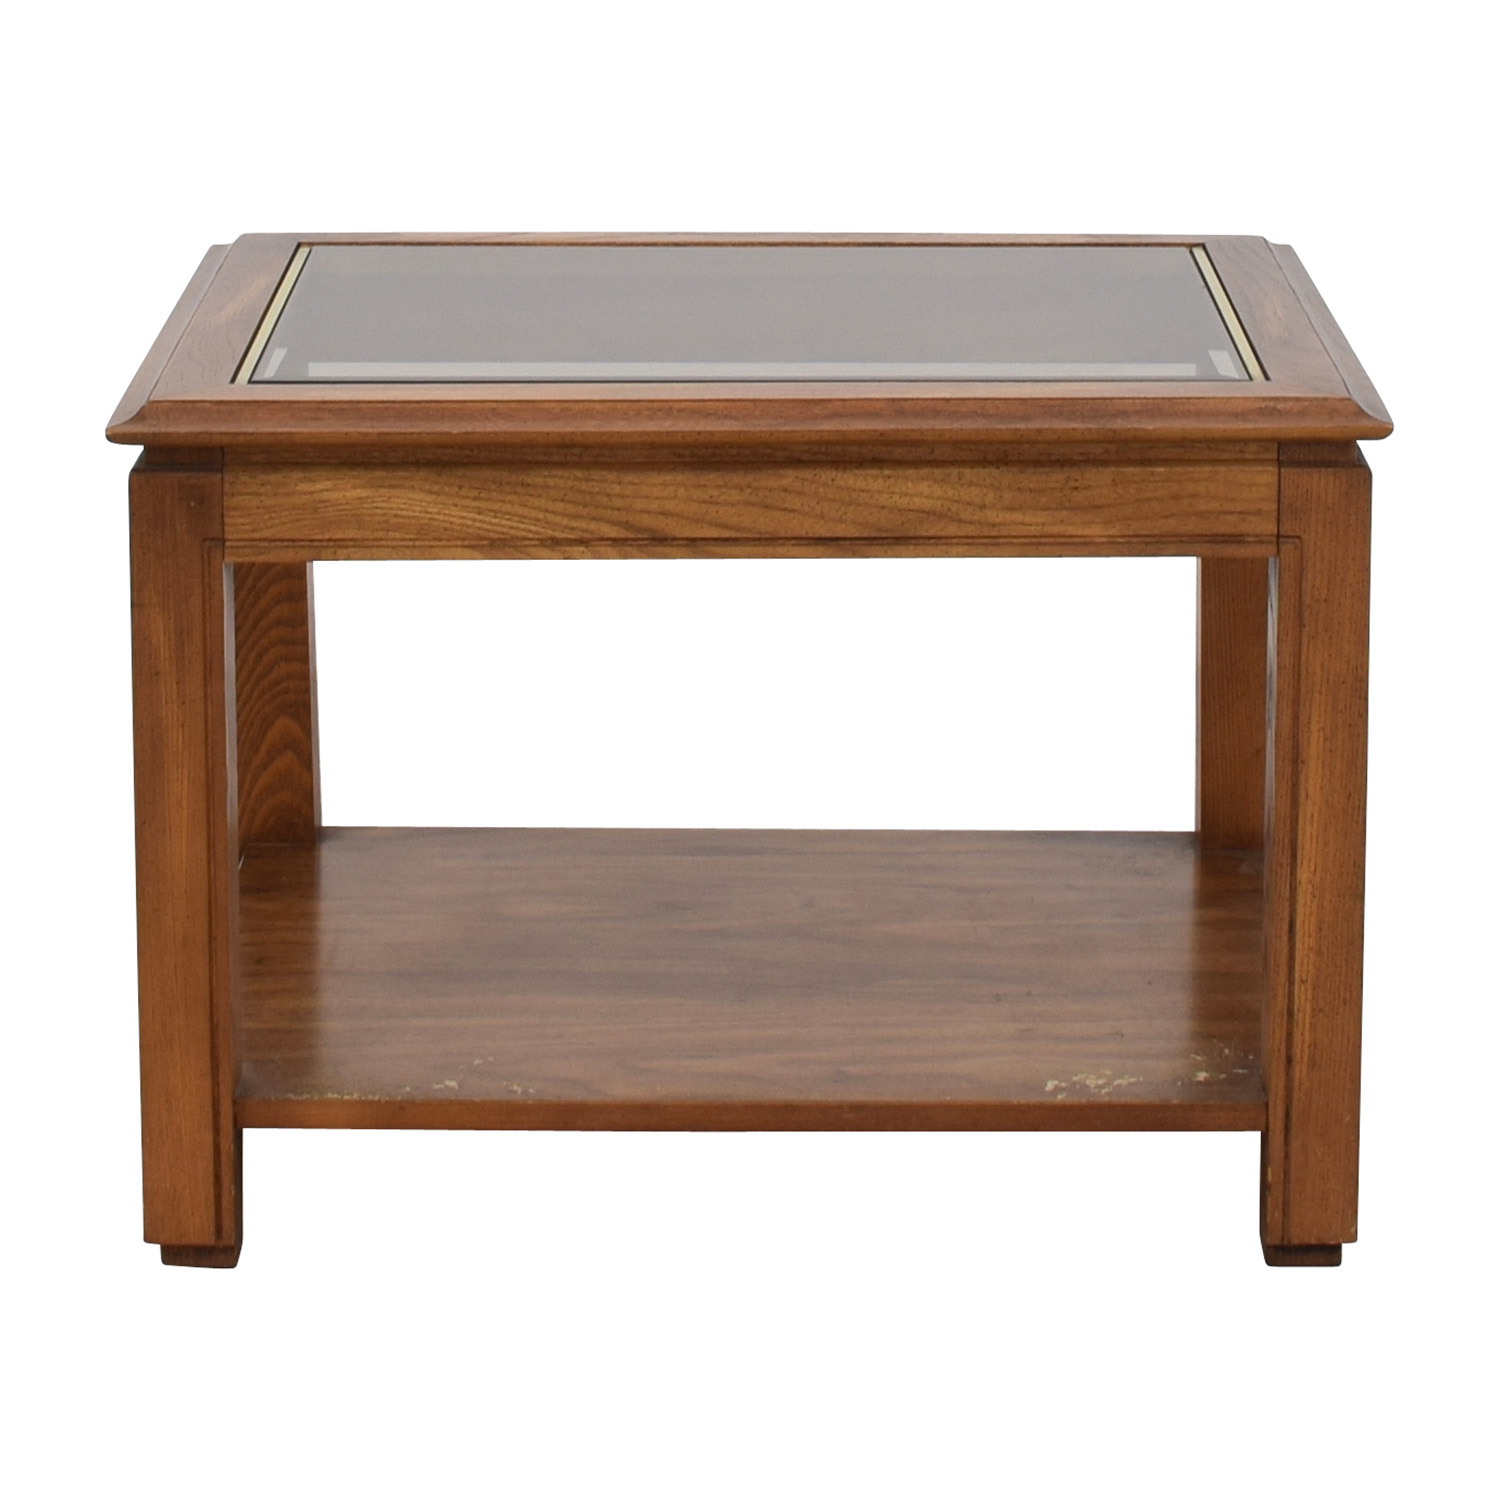 Walnut and Glass Rectangular Coffee Table dimensions